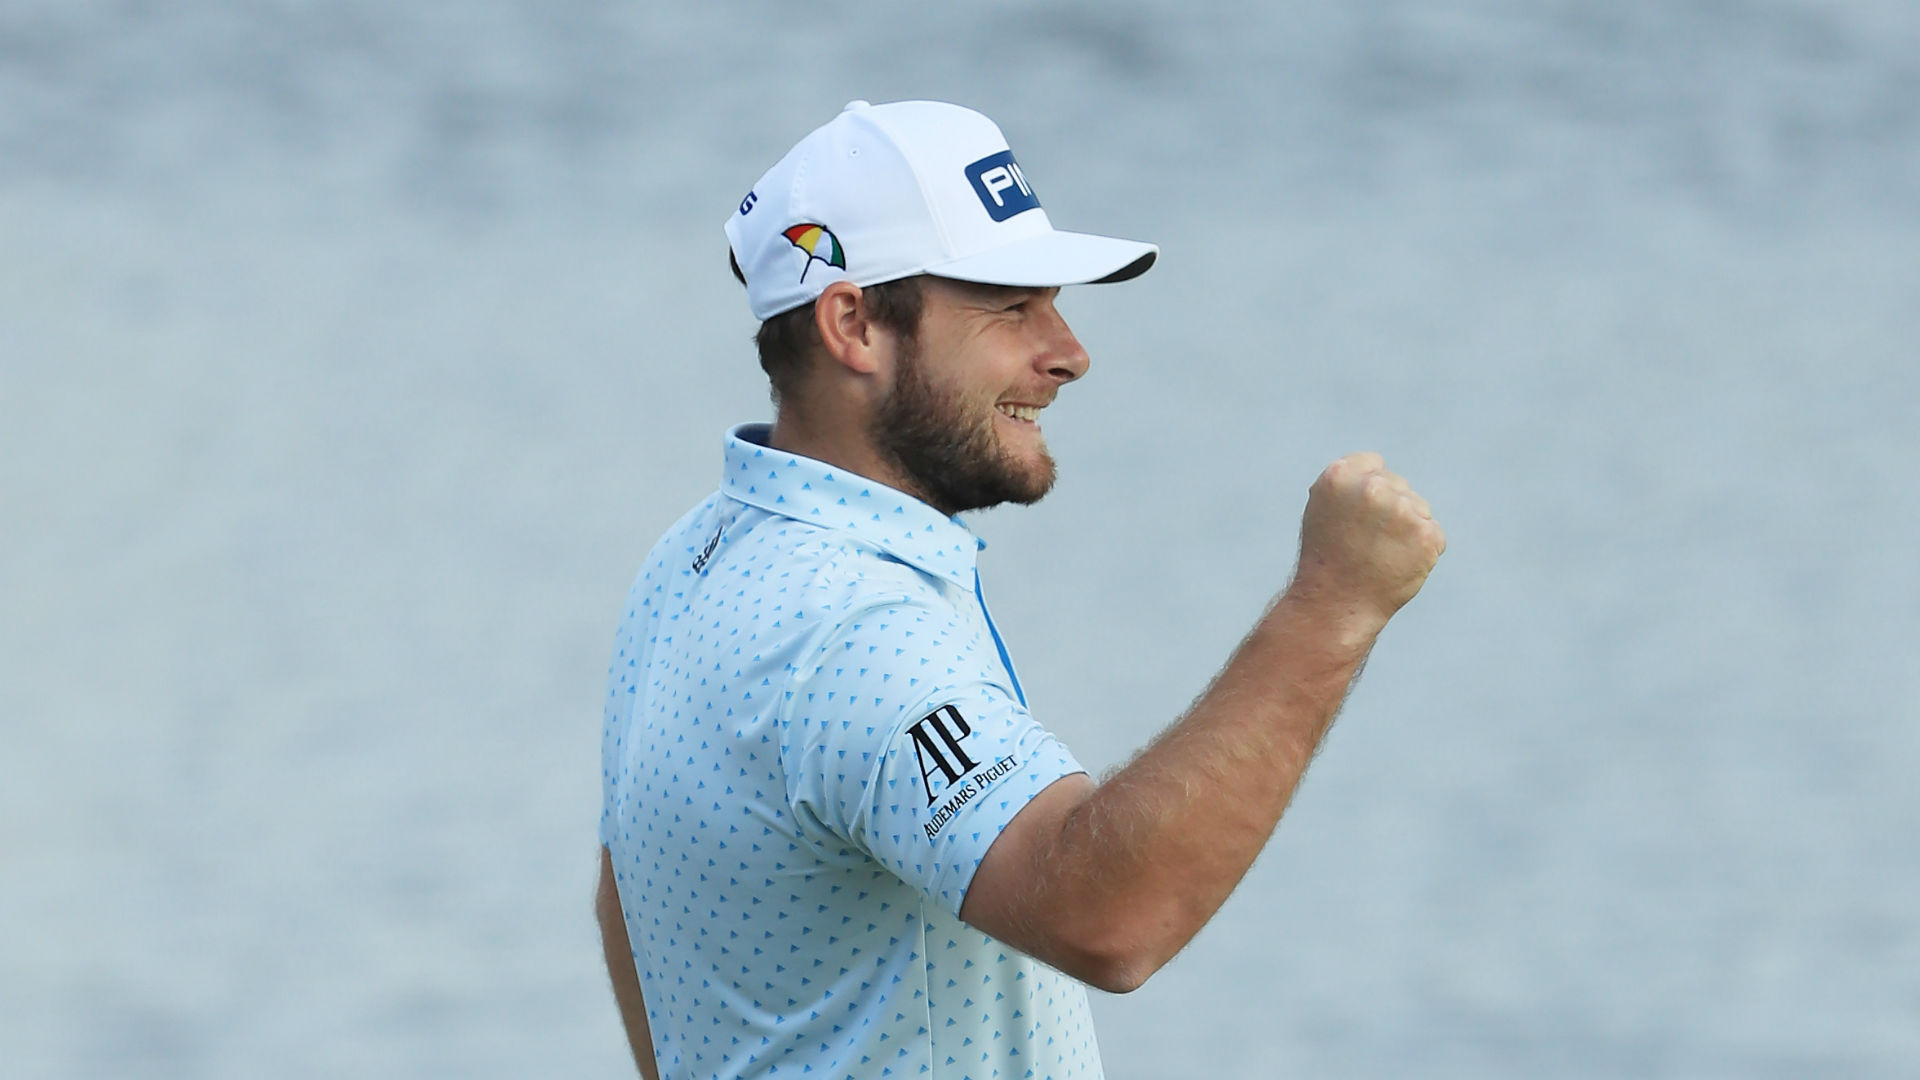 Hatton stands firm at brutal Bay Hill for first PGA Tour win